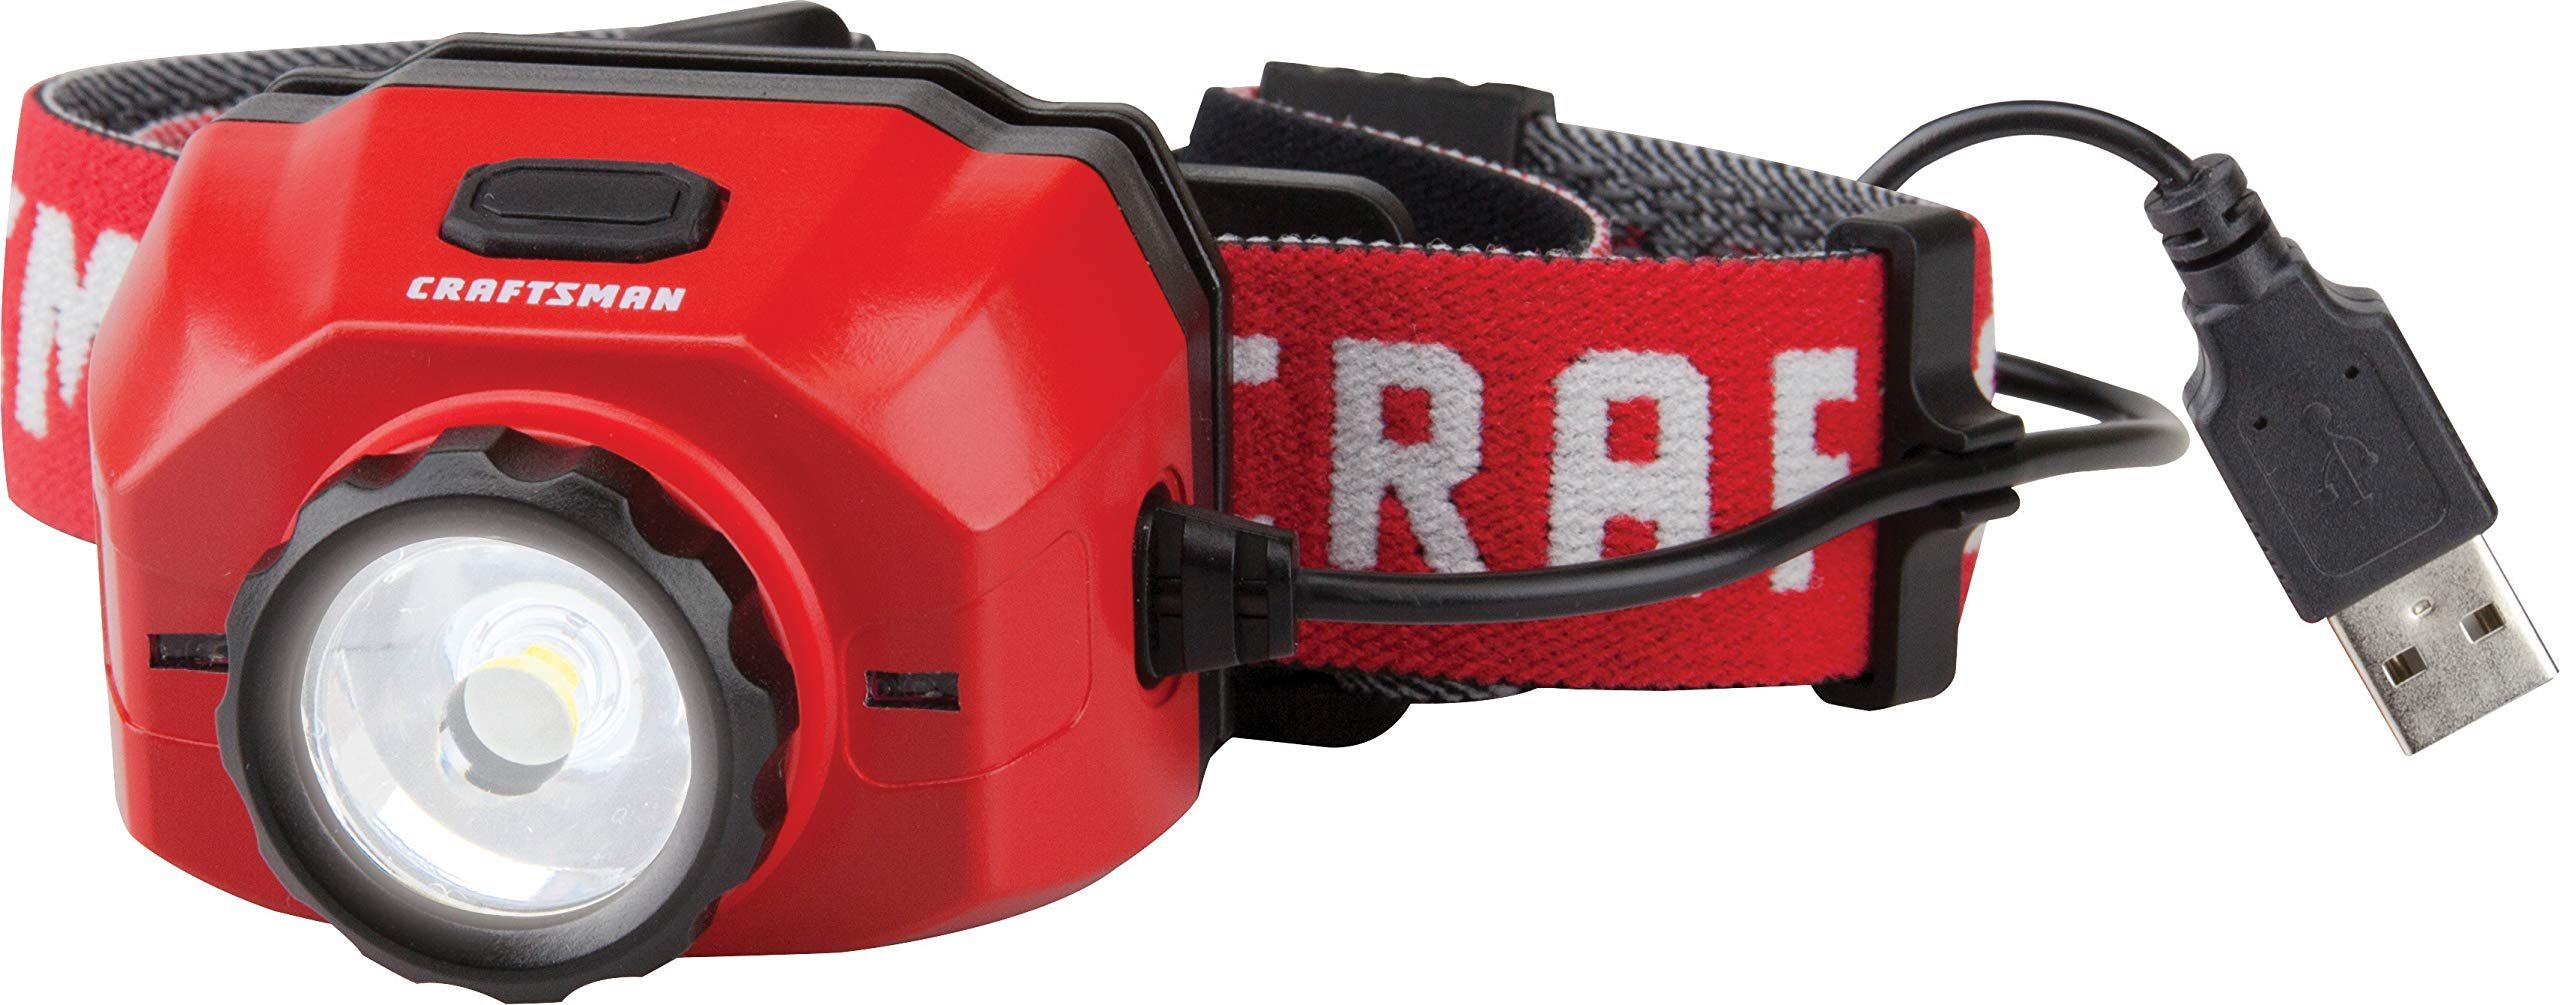 Craftsman CMXLHB5 Hands Free Rechargeable 500 Lumen Lithium Ion LED Headlamp Flashlight with Adjustable Headband and Focus Lens by Craftsman